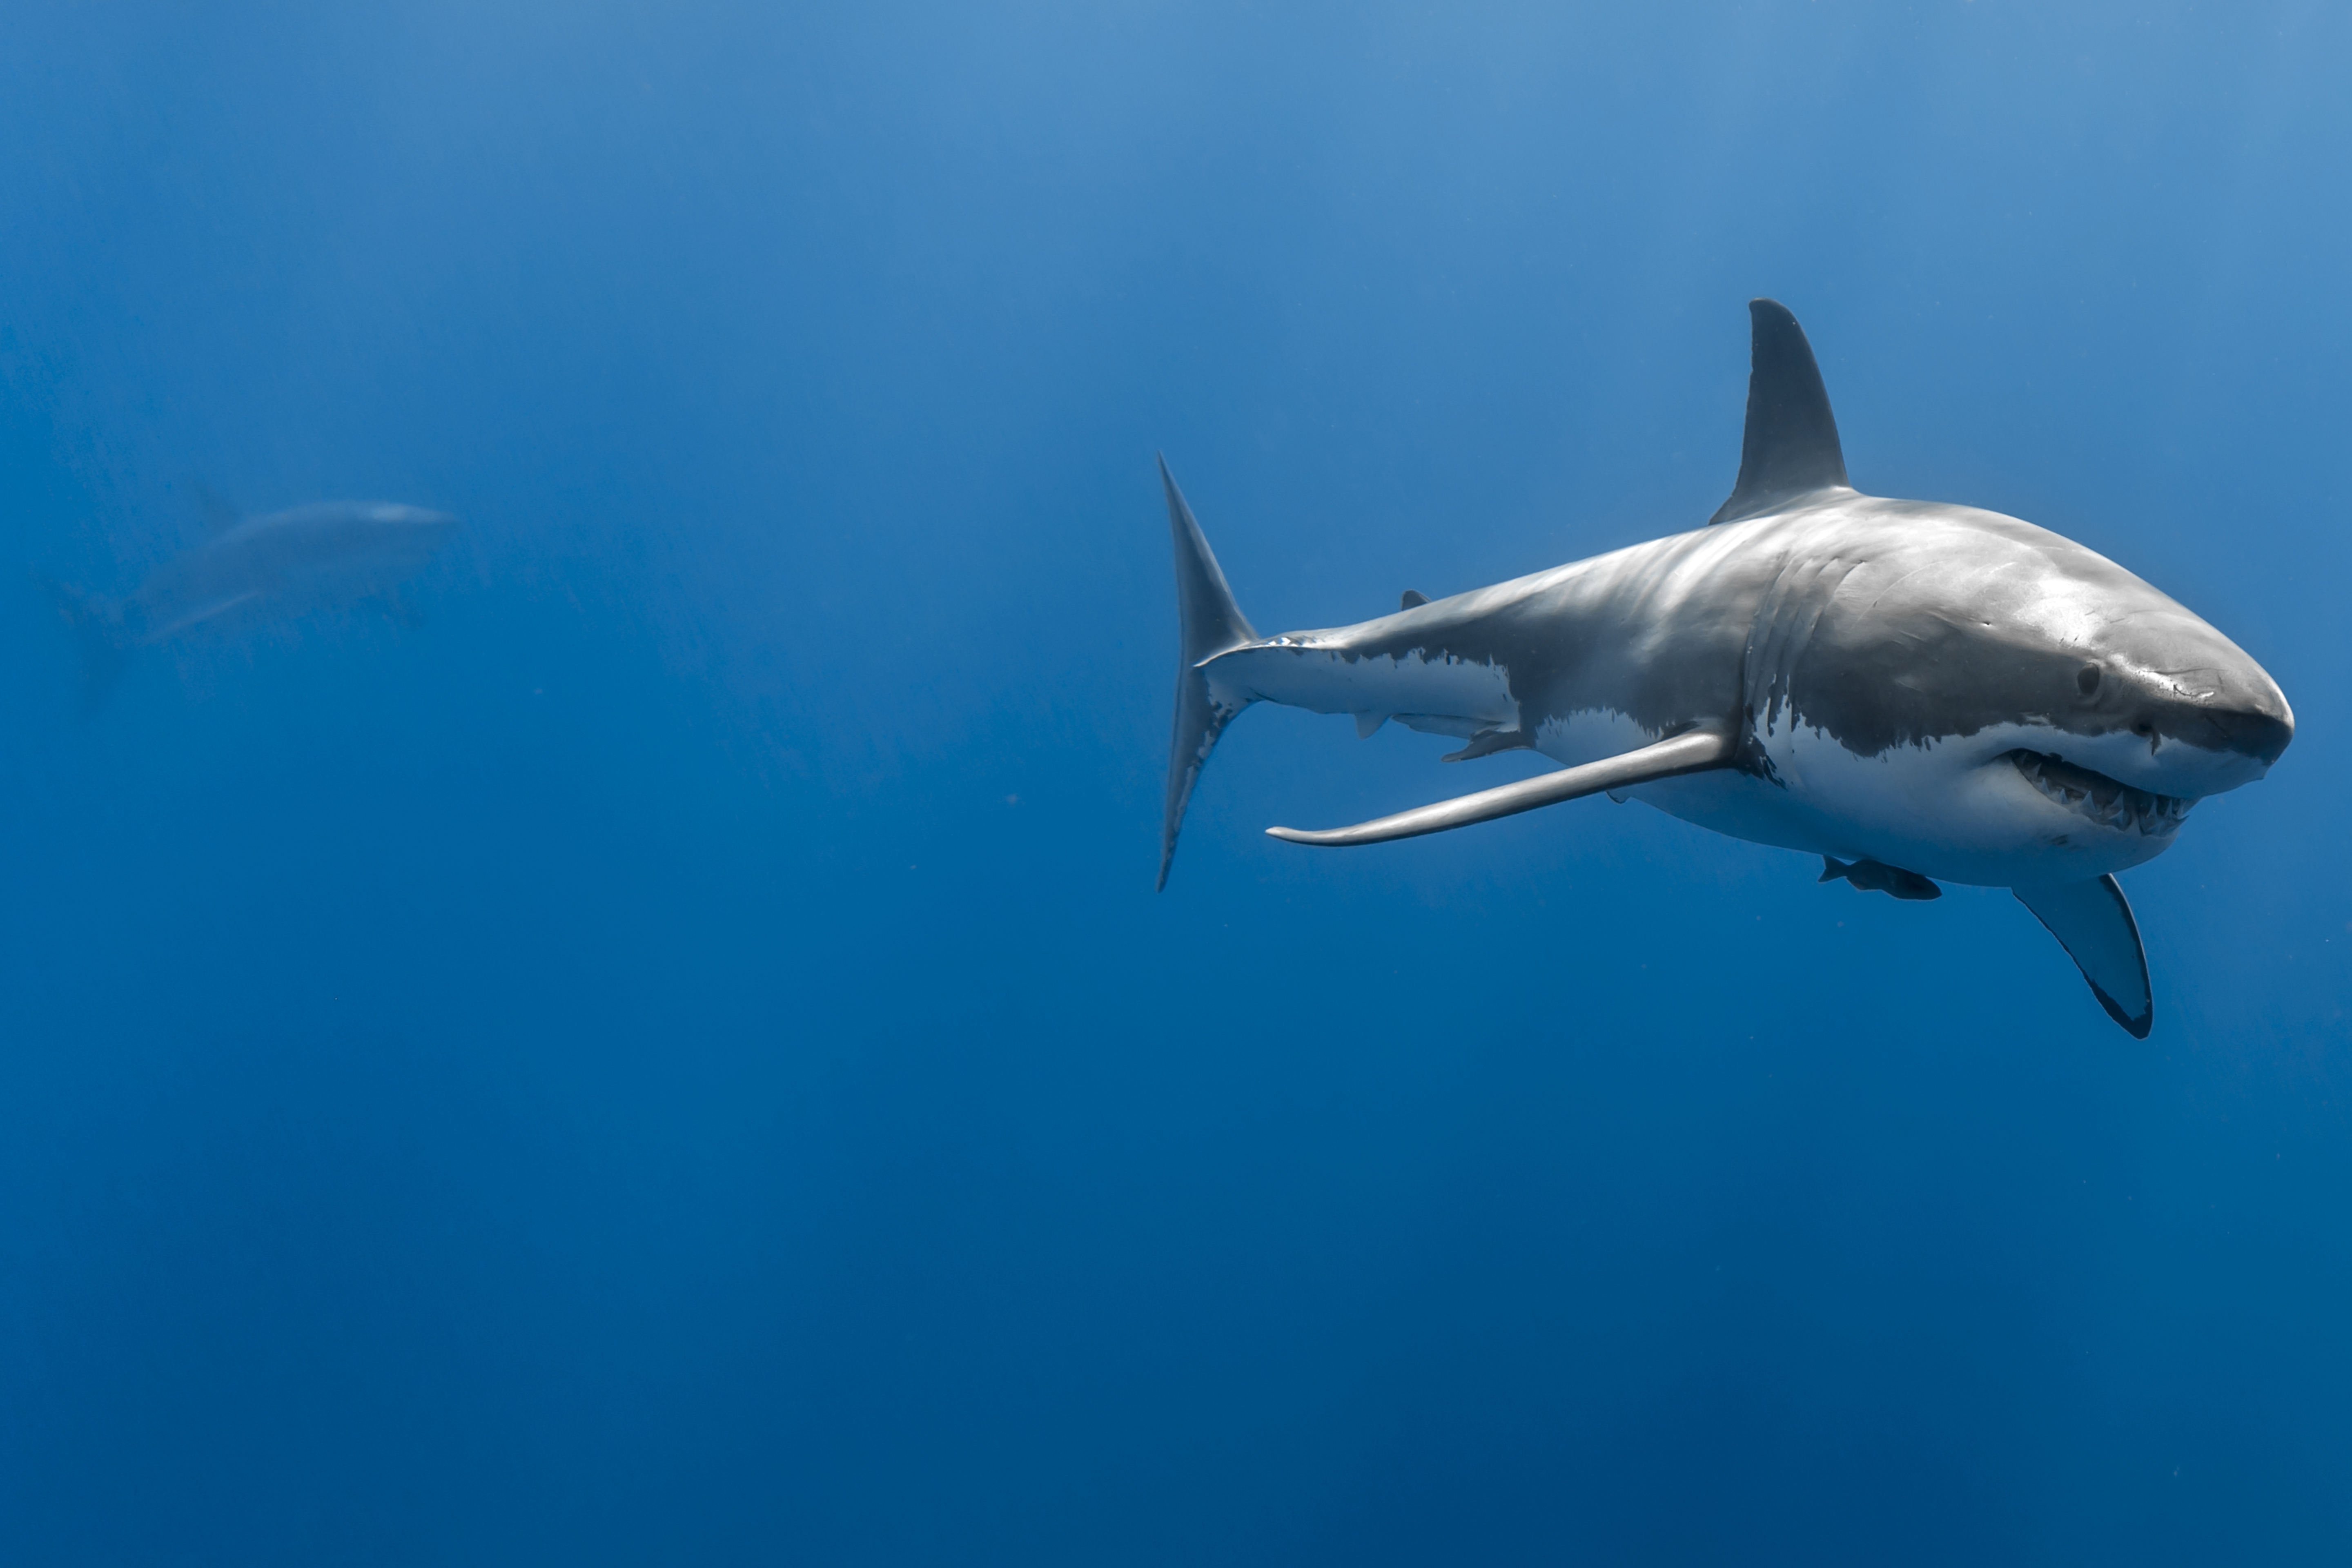 Shark 5k Retina Ultra HD Wallpaper And Background Image